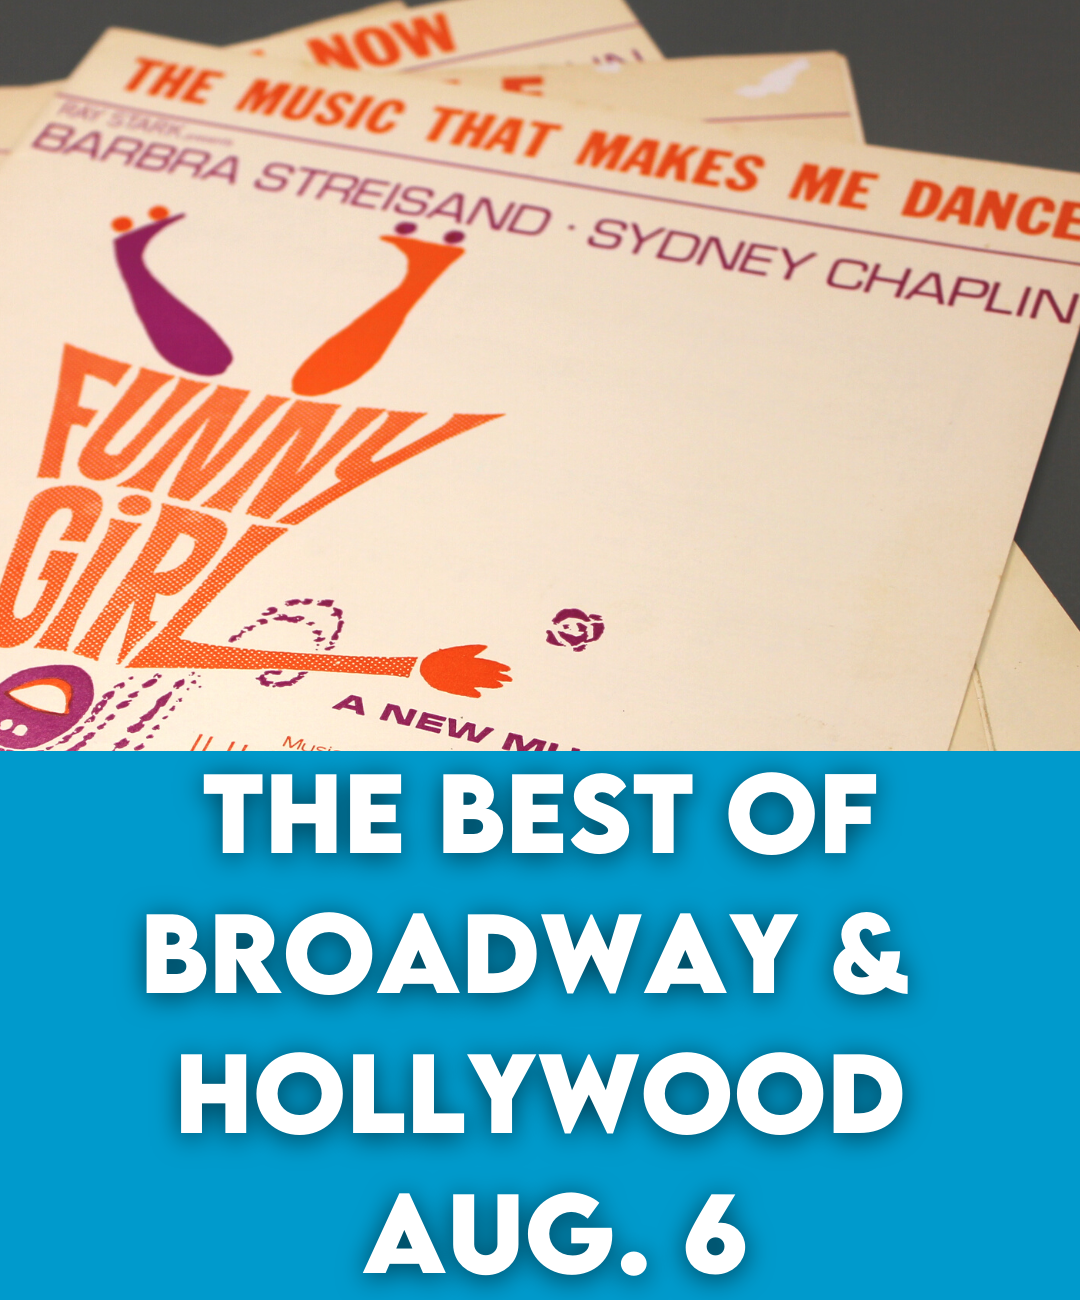 The Best of Broadway and Hollywood Aug. 6